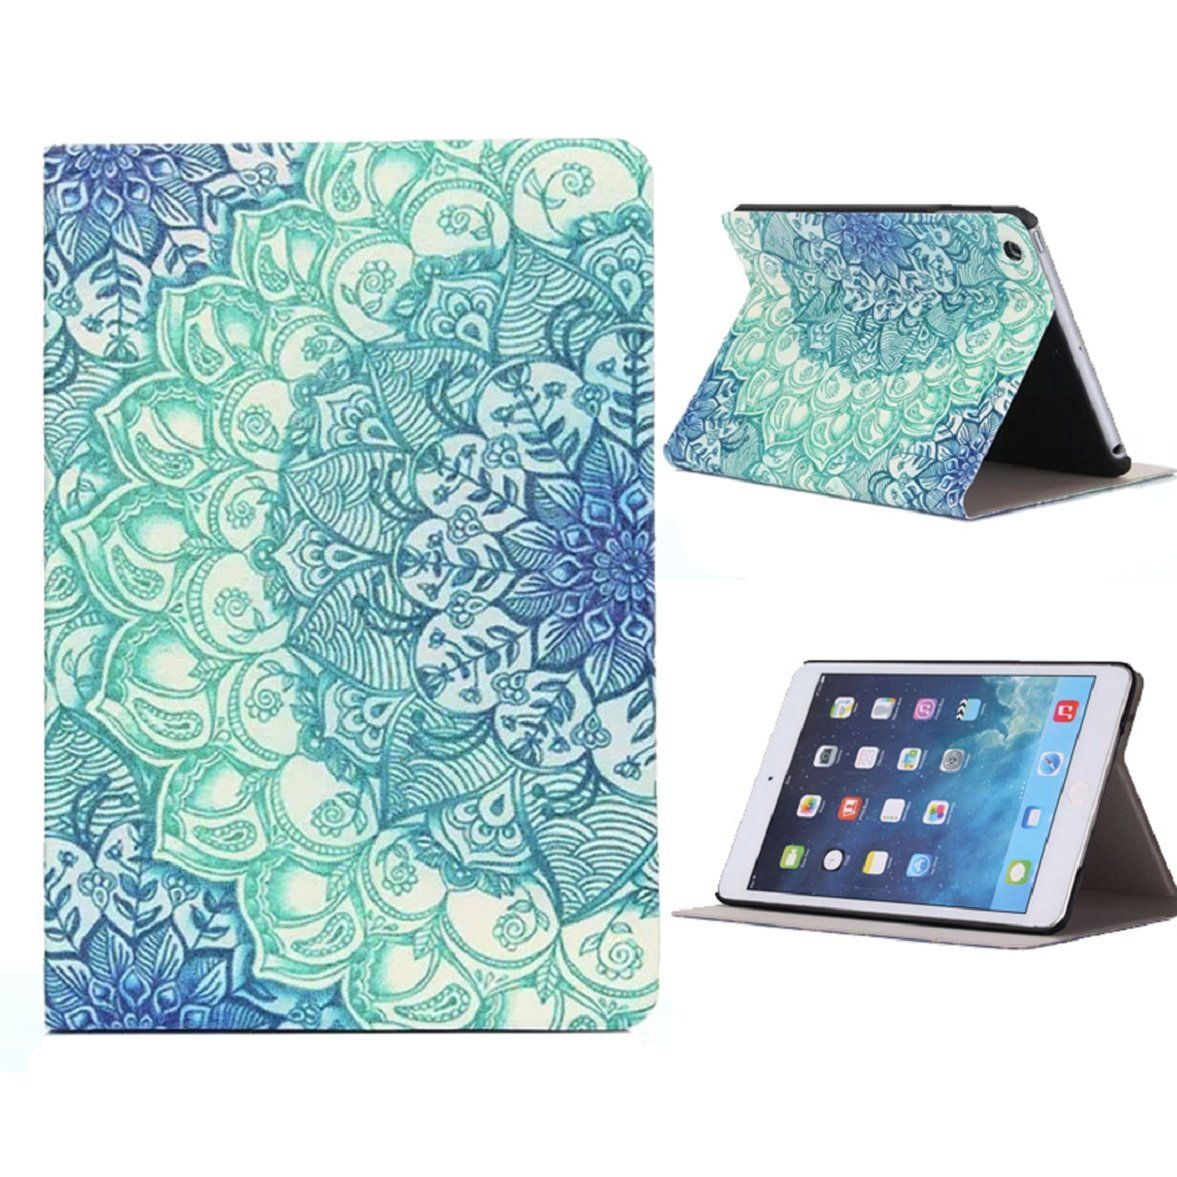 Ipad Mini Leather Case, Shensee Floral Pattern Flip Stand Leather Case Cover for Ipad Mini 1 2 3 Retina